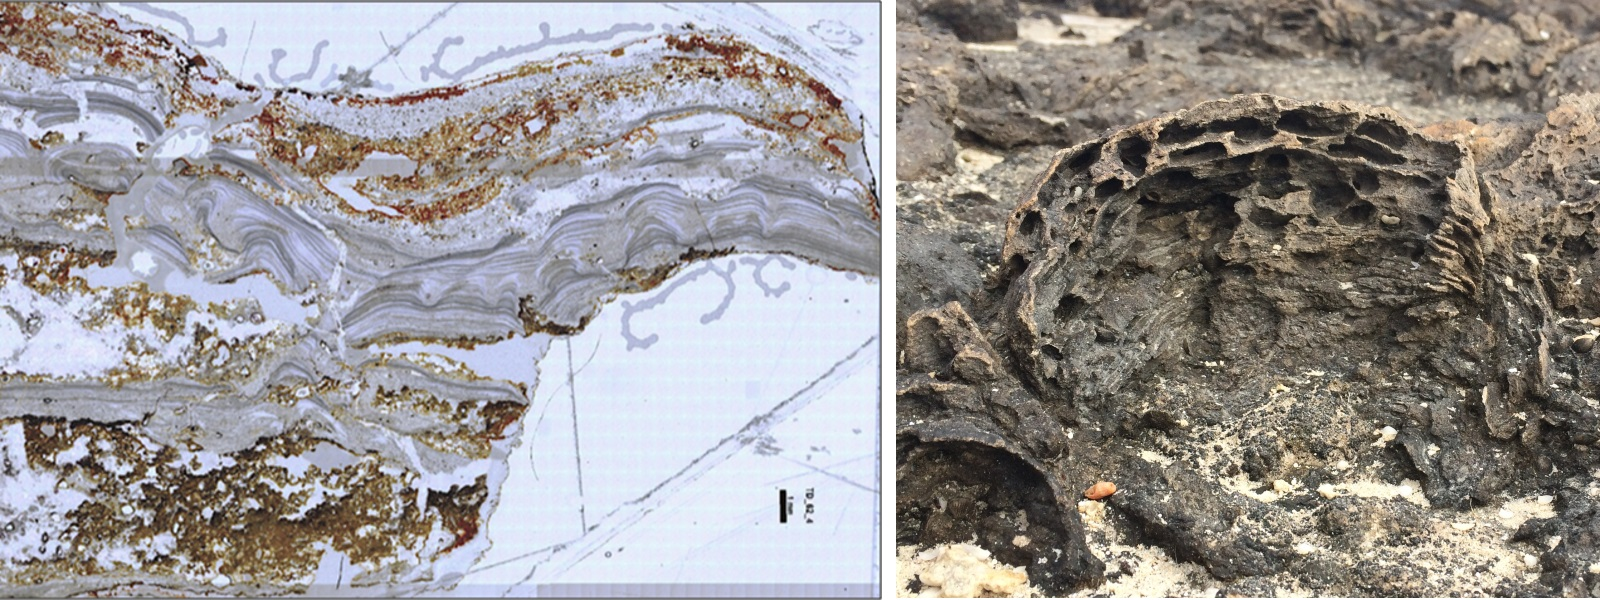 micrograph and photograph of stromatolites